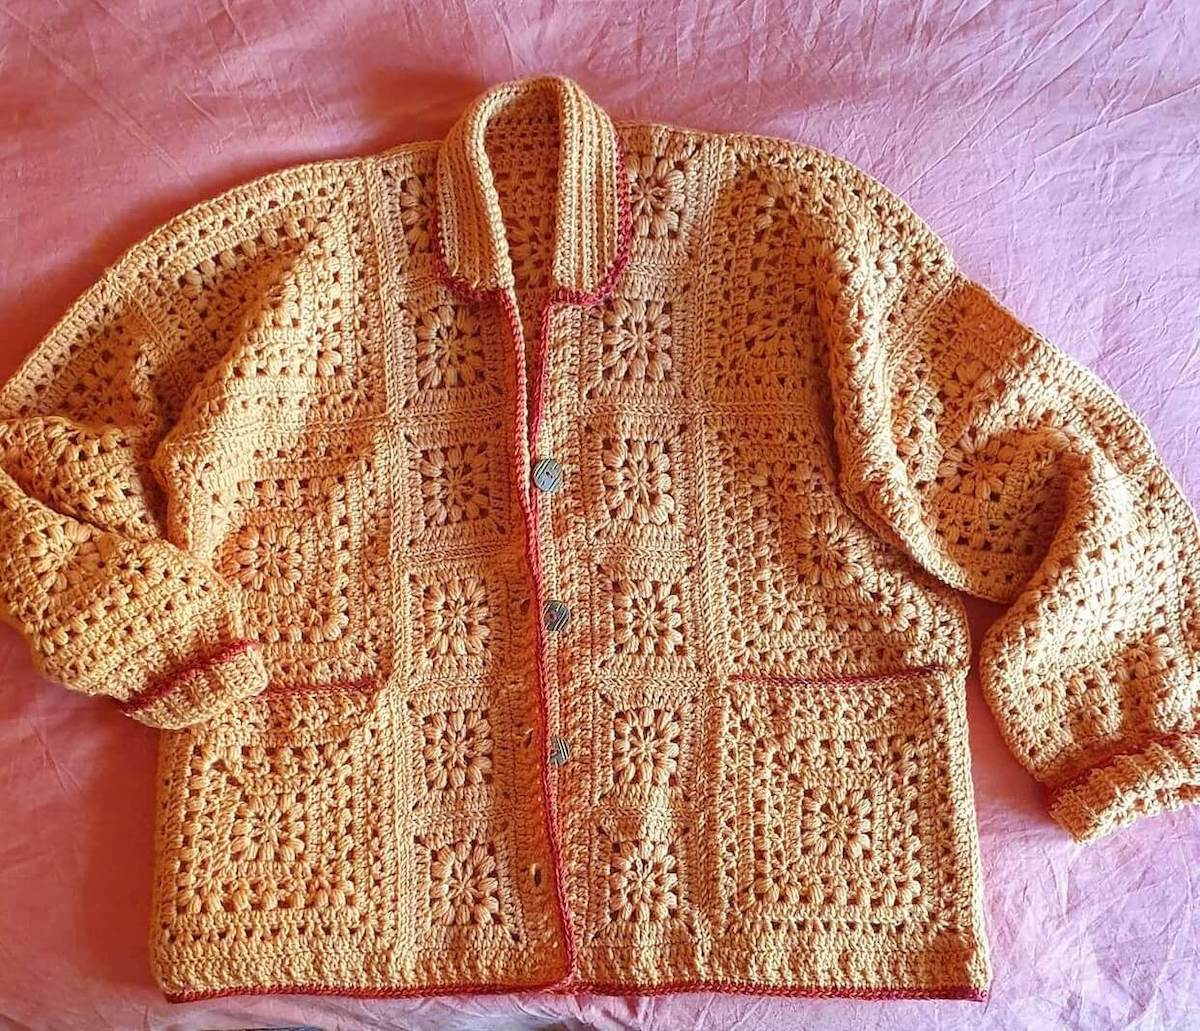 Crochet granny square cardigan made by mumski_34 - free crochet pattern by Wilmade